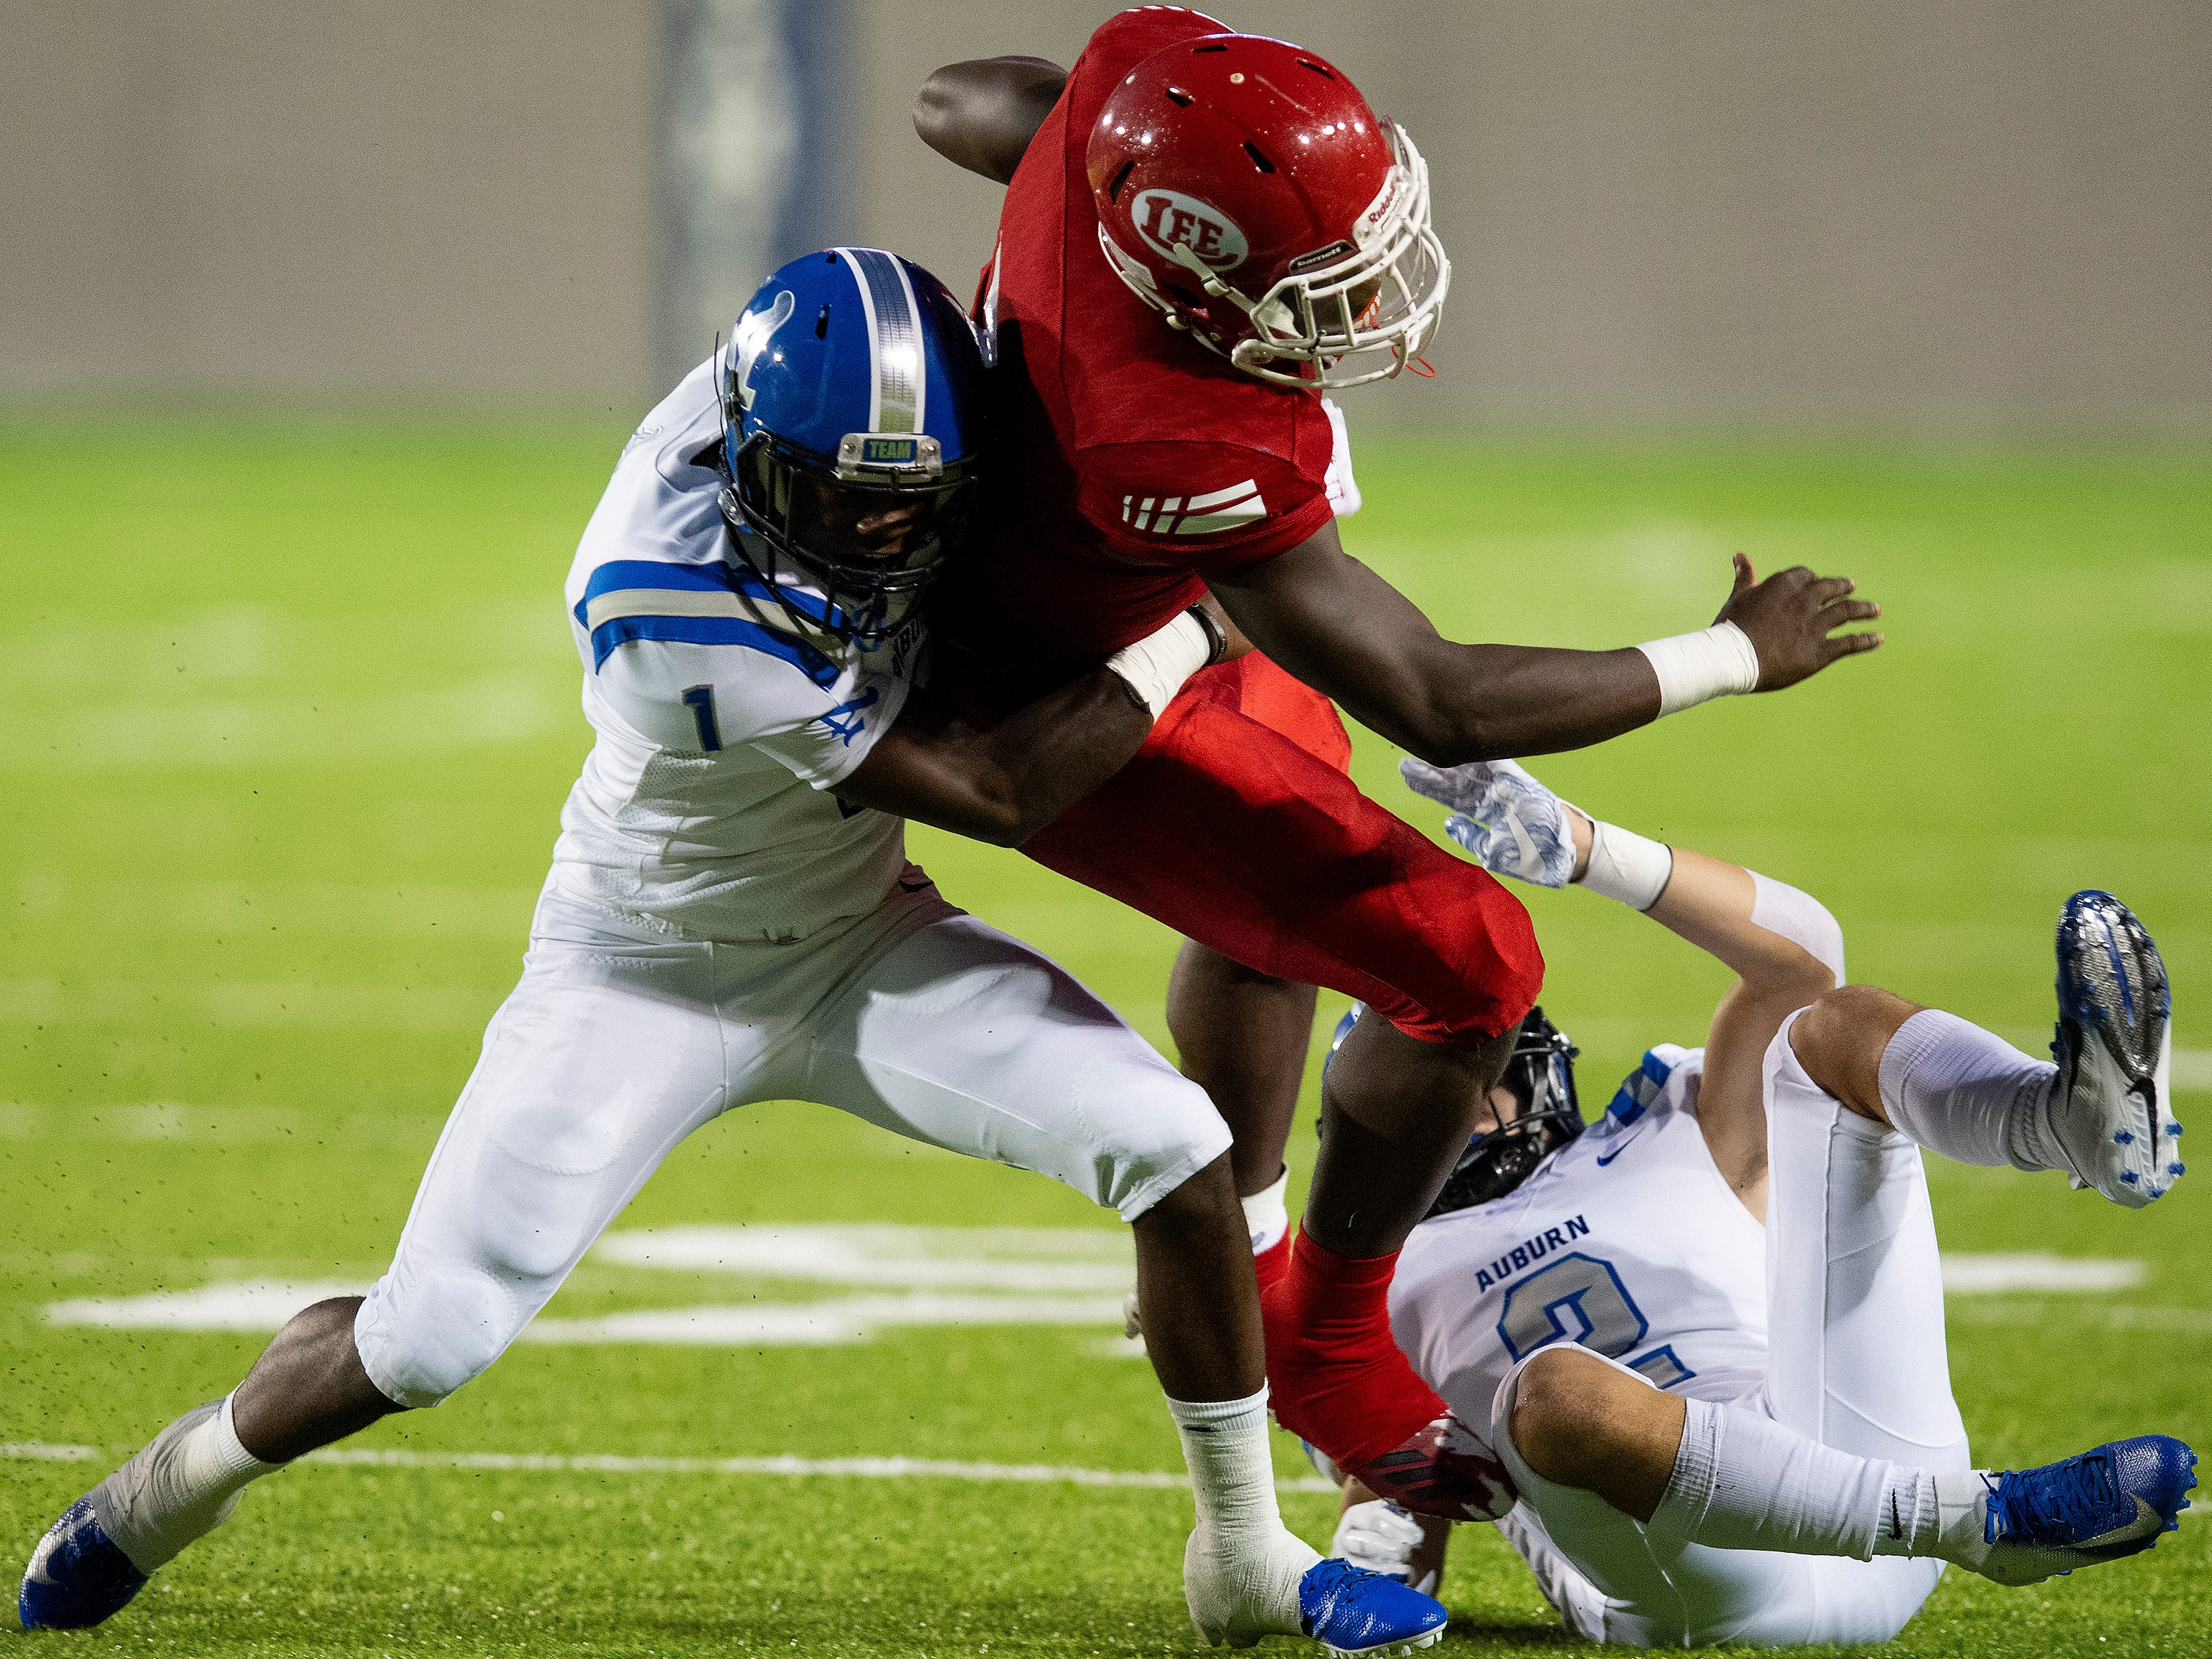 Lee's Tedarrian Murray is stopped by Auburn's JT Rogers (1) and Cally Chizik (2) in first half action at Cramton Bowl in Montgomery, Ala., on Thursday September 13, 2018.